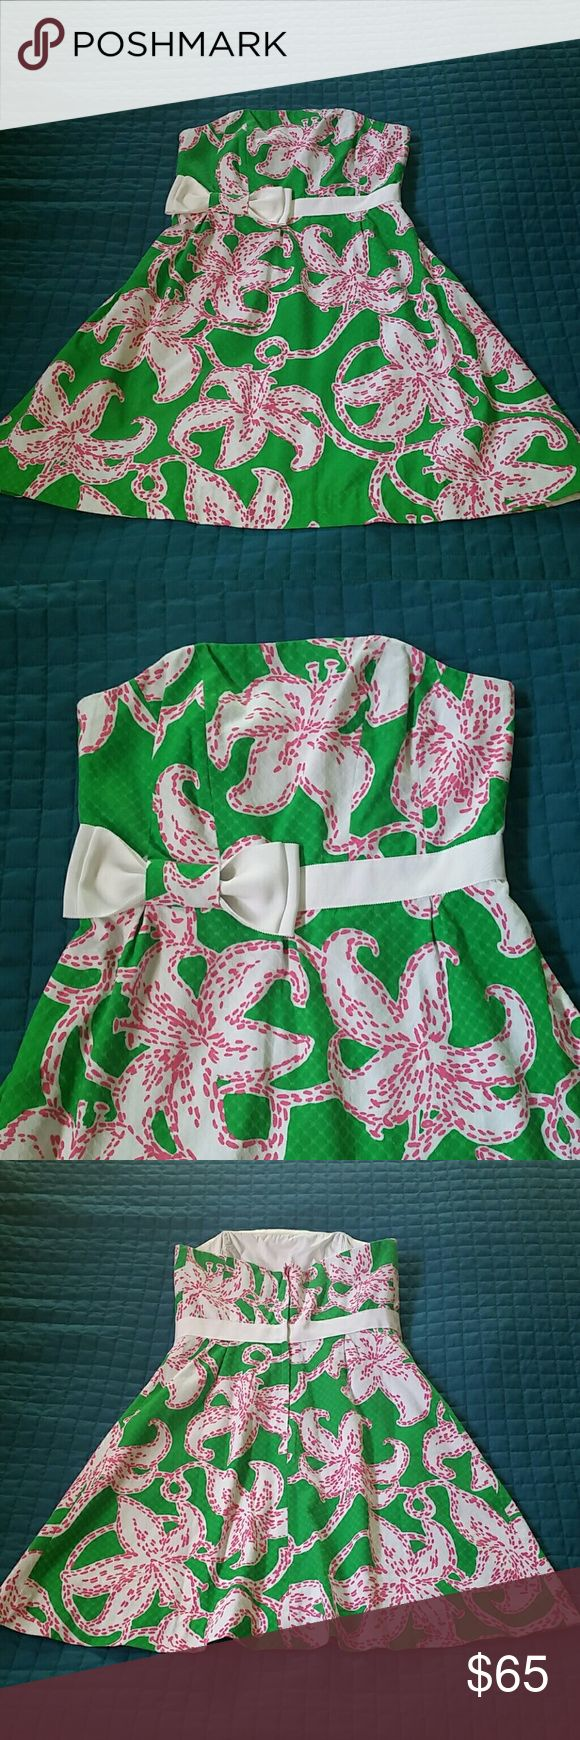 4 Lilly Pulitzer Strapless Summer Dress Size 4 true to the size,  preowned in great condition Lilly Pulitzer Dresses Strapless